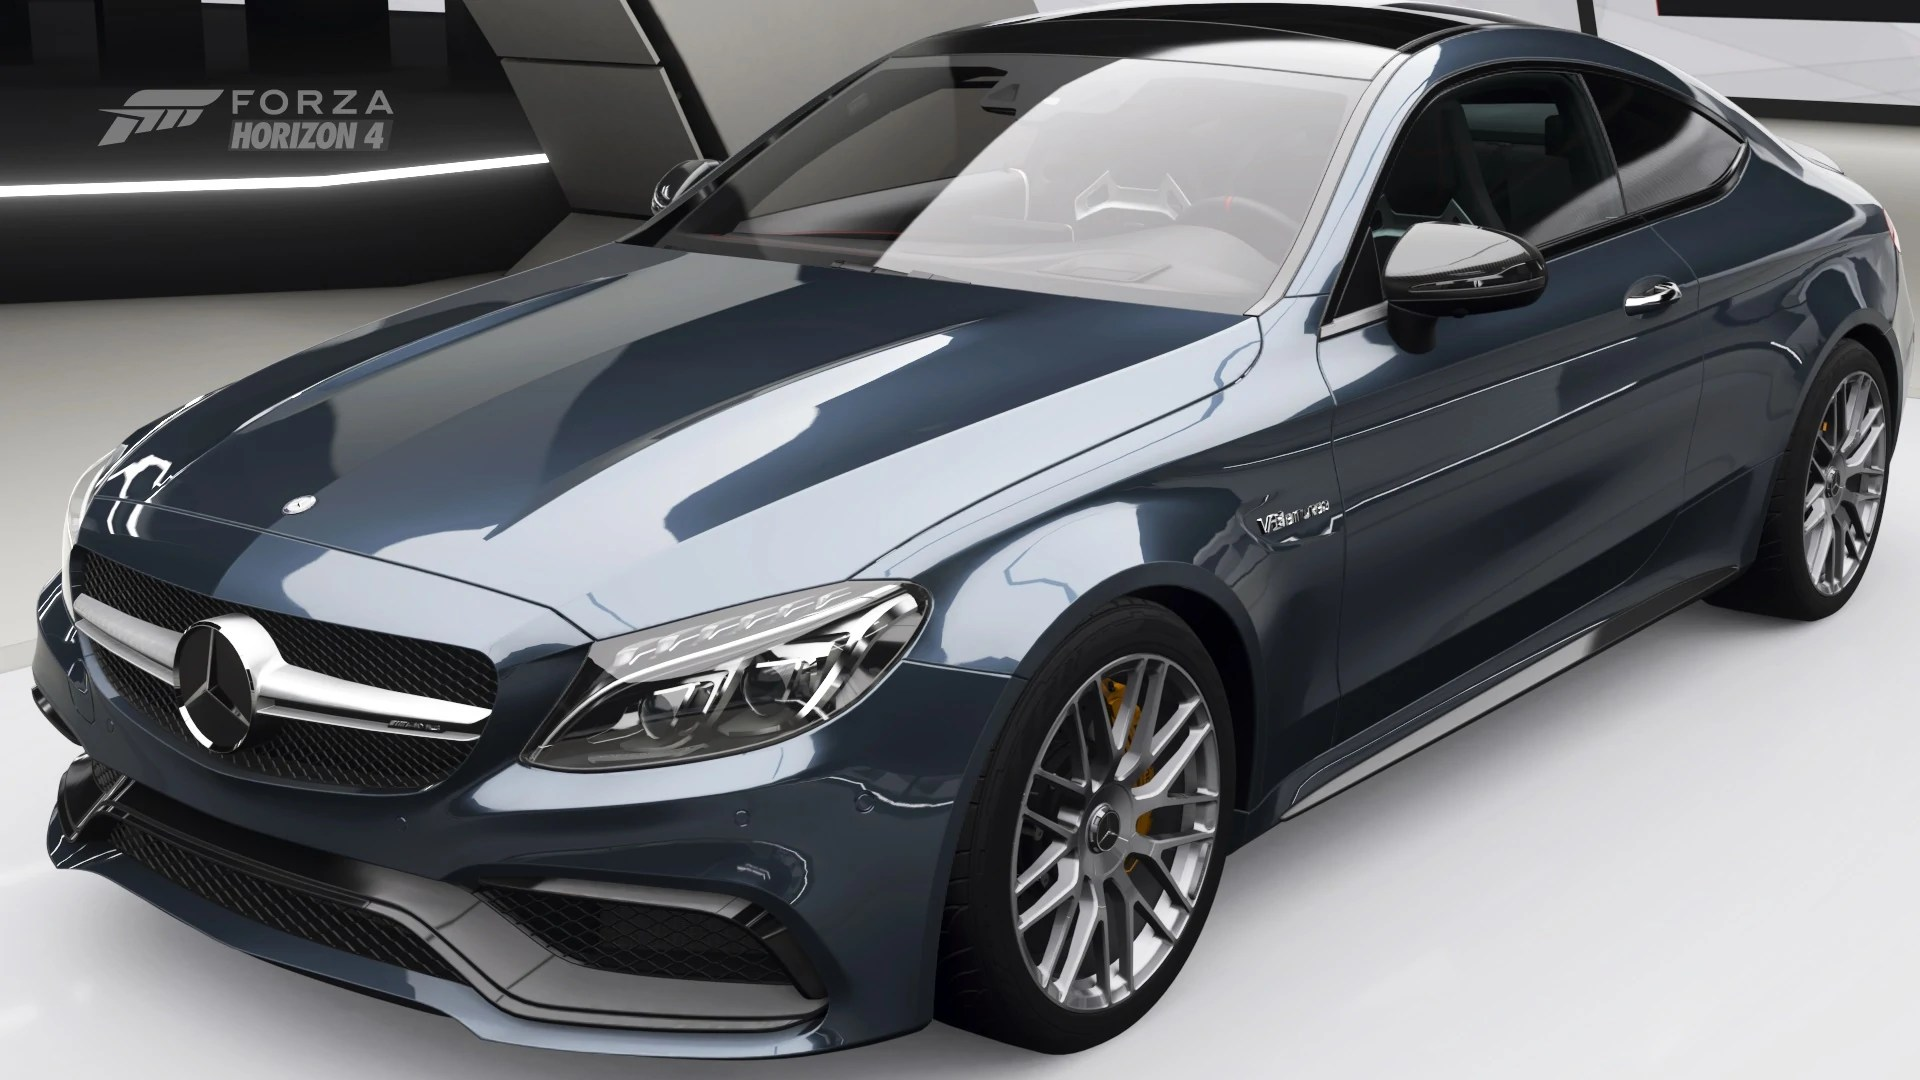 medium resolution of mercedes amg c 63 s coup in forza horizon 4